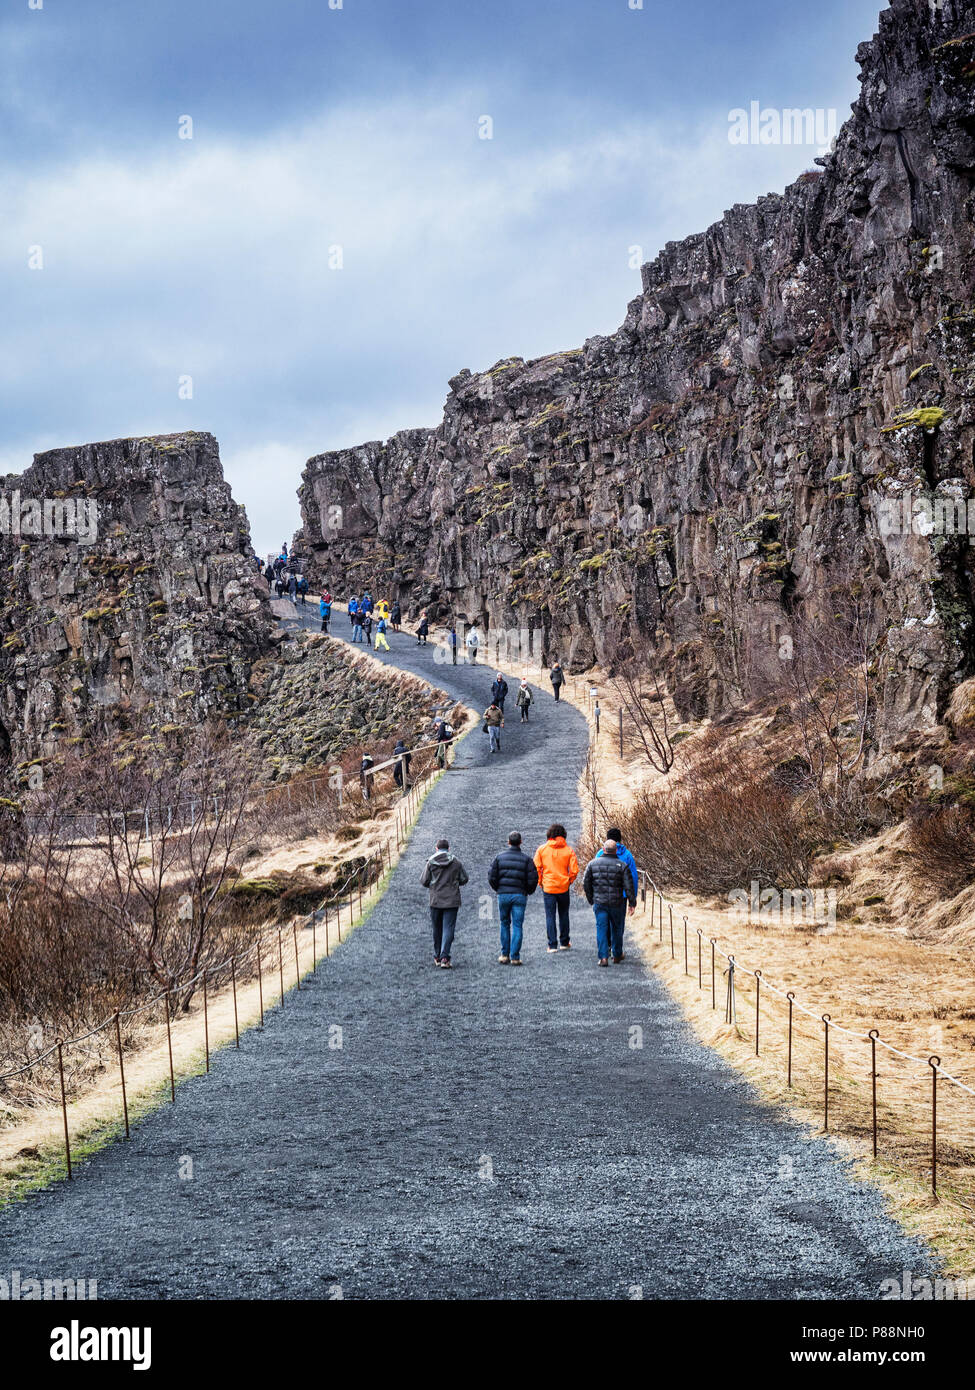 19 April 2018: Thingvellir National Park, Iceland - Visitors walking in the Almannagja Canyon which runs through this National Park, one of the major  - Stock Image